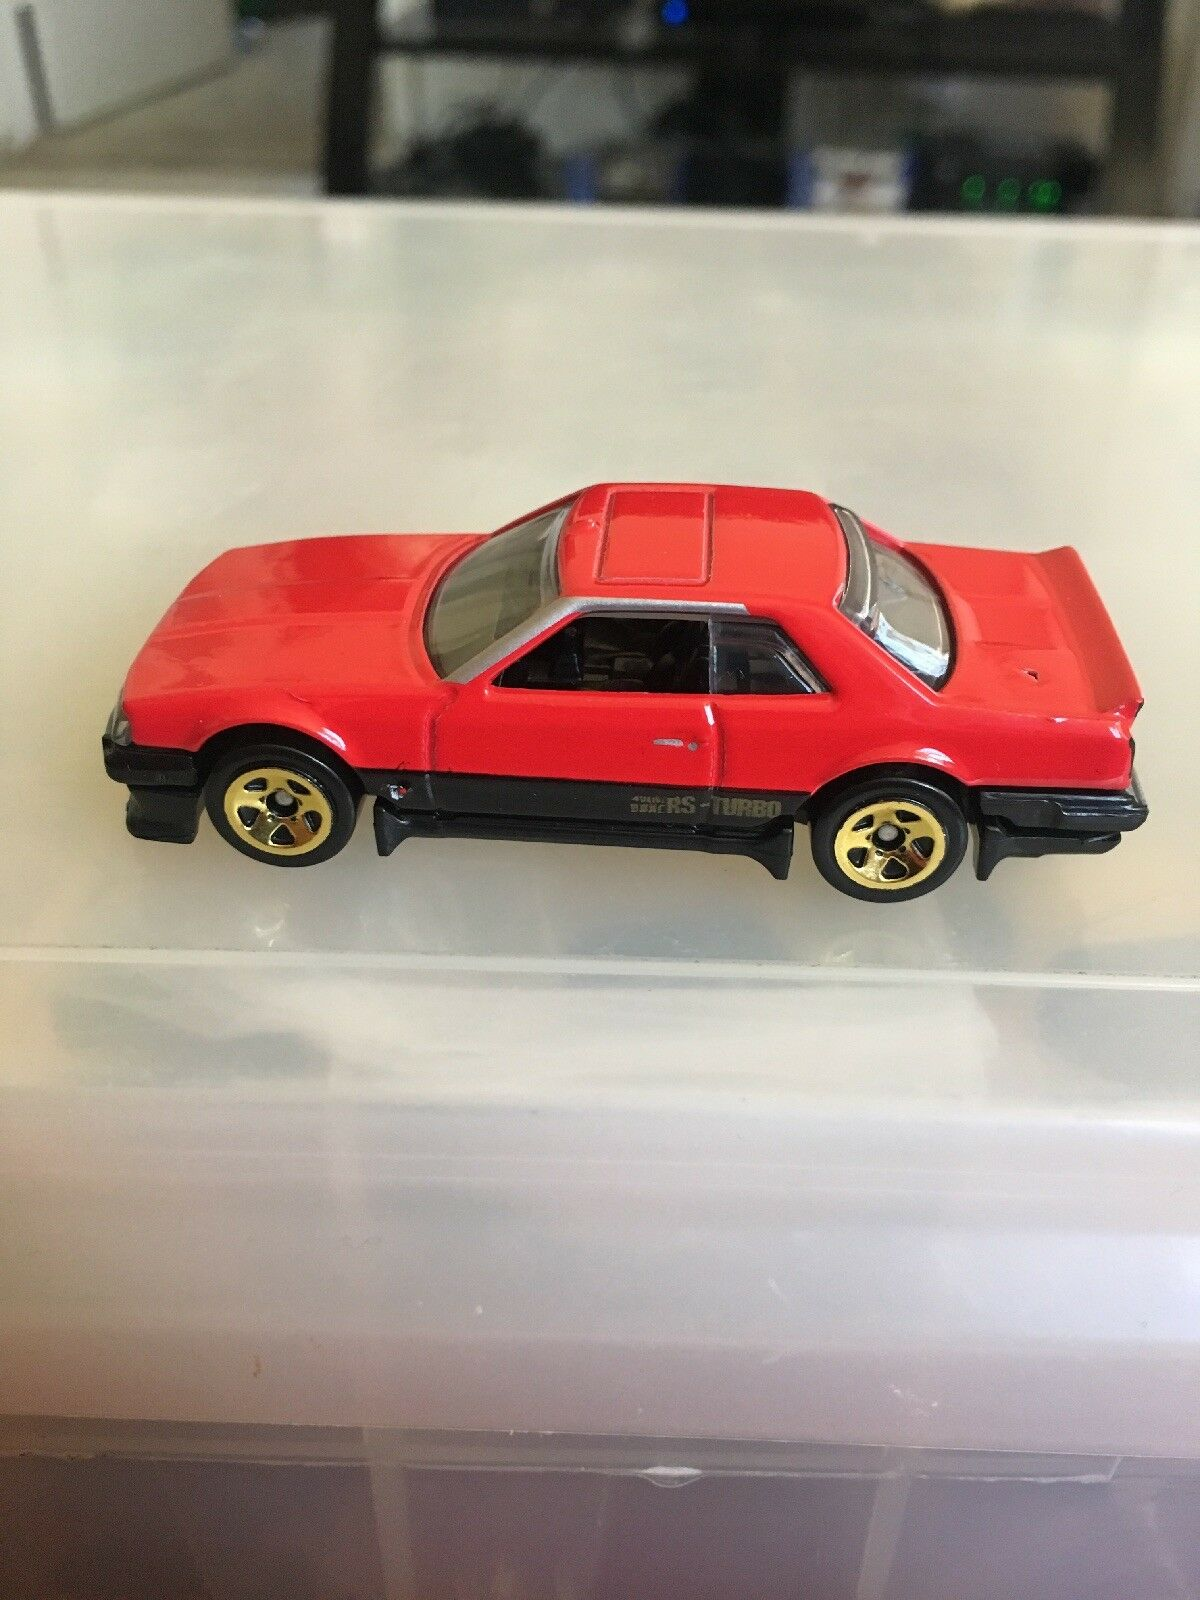 2017 Hot Wheels 82 Nissan Skyline R30 Red Unspun Unrivet Prototype Hotwheels Silver 1 Of 3only 2 Available